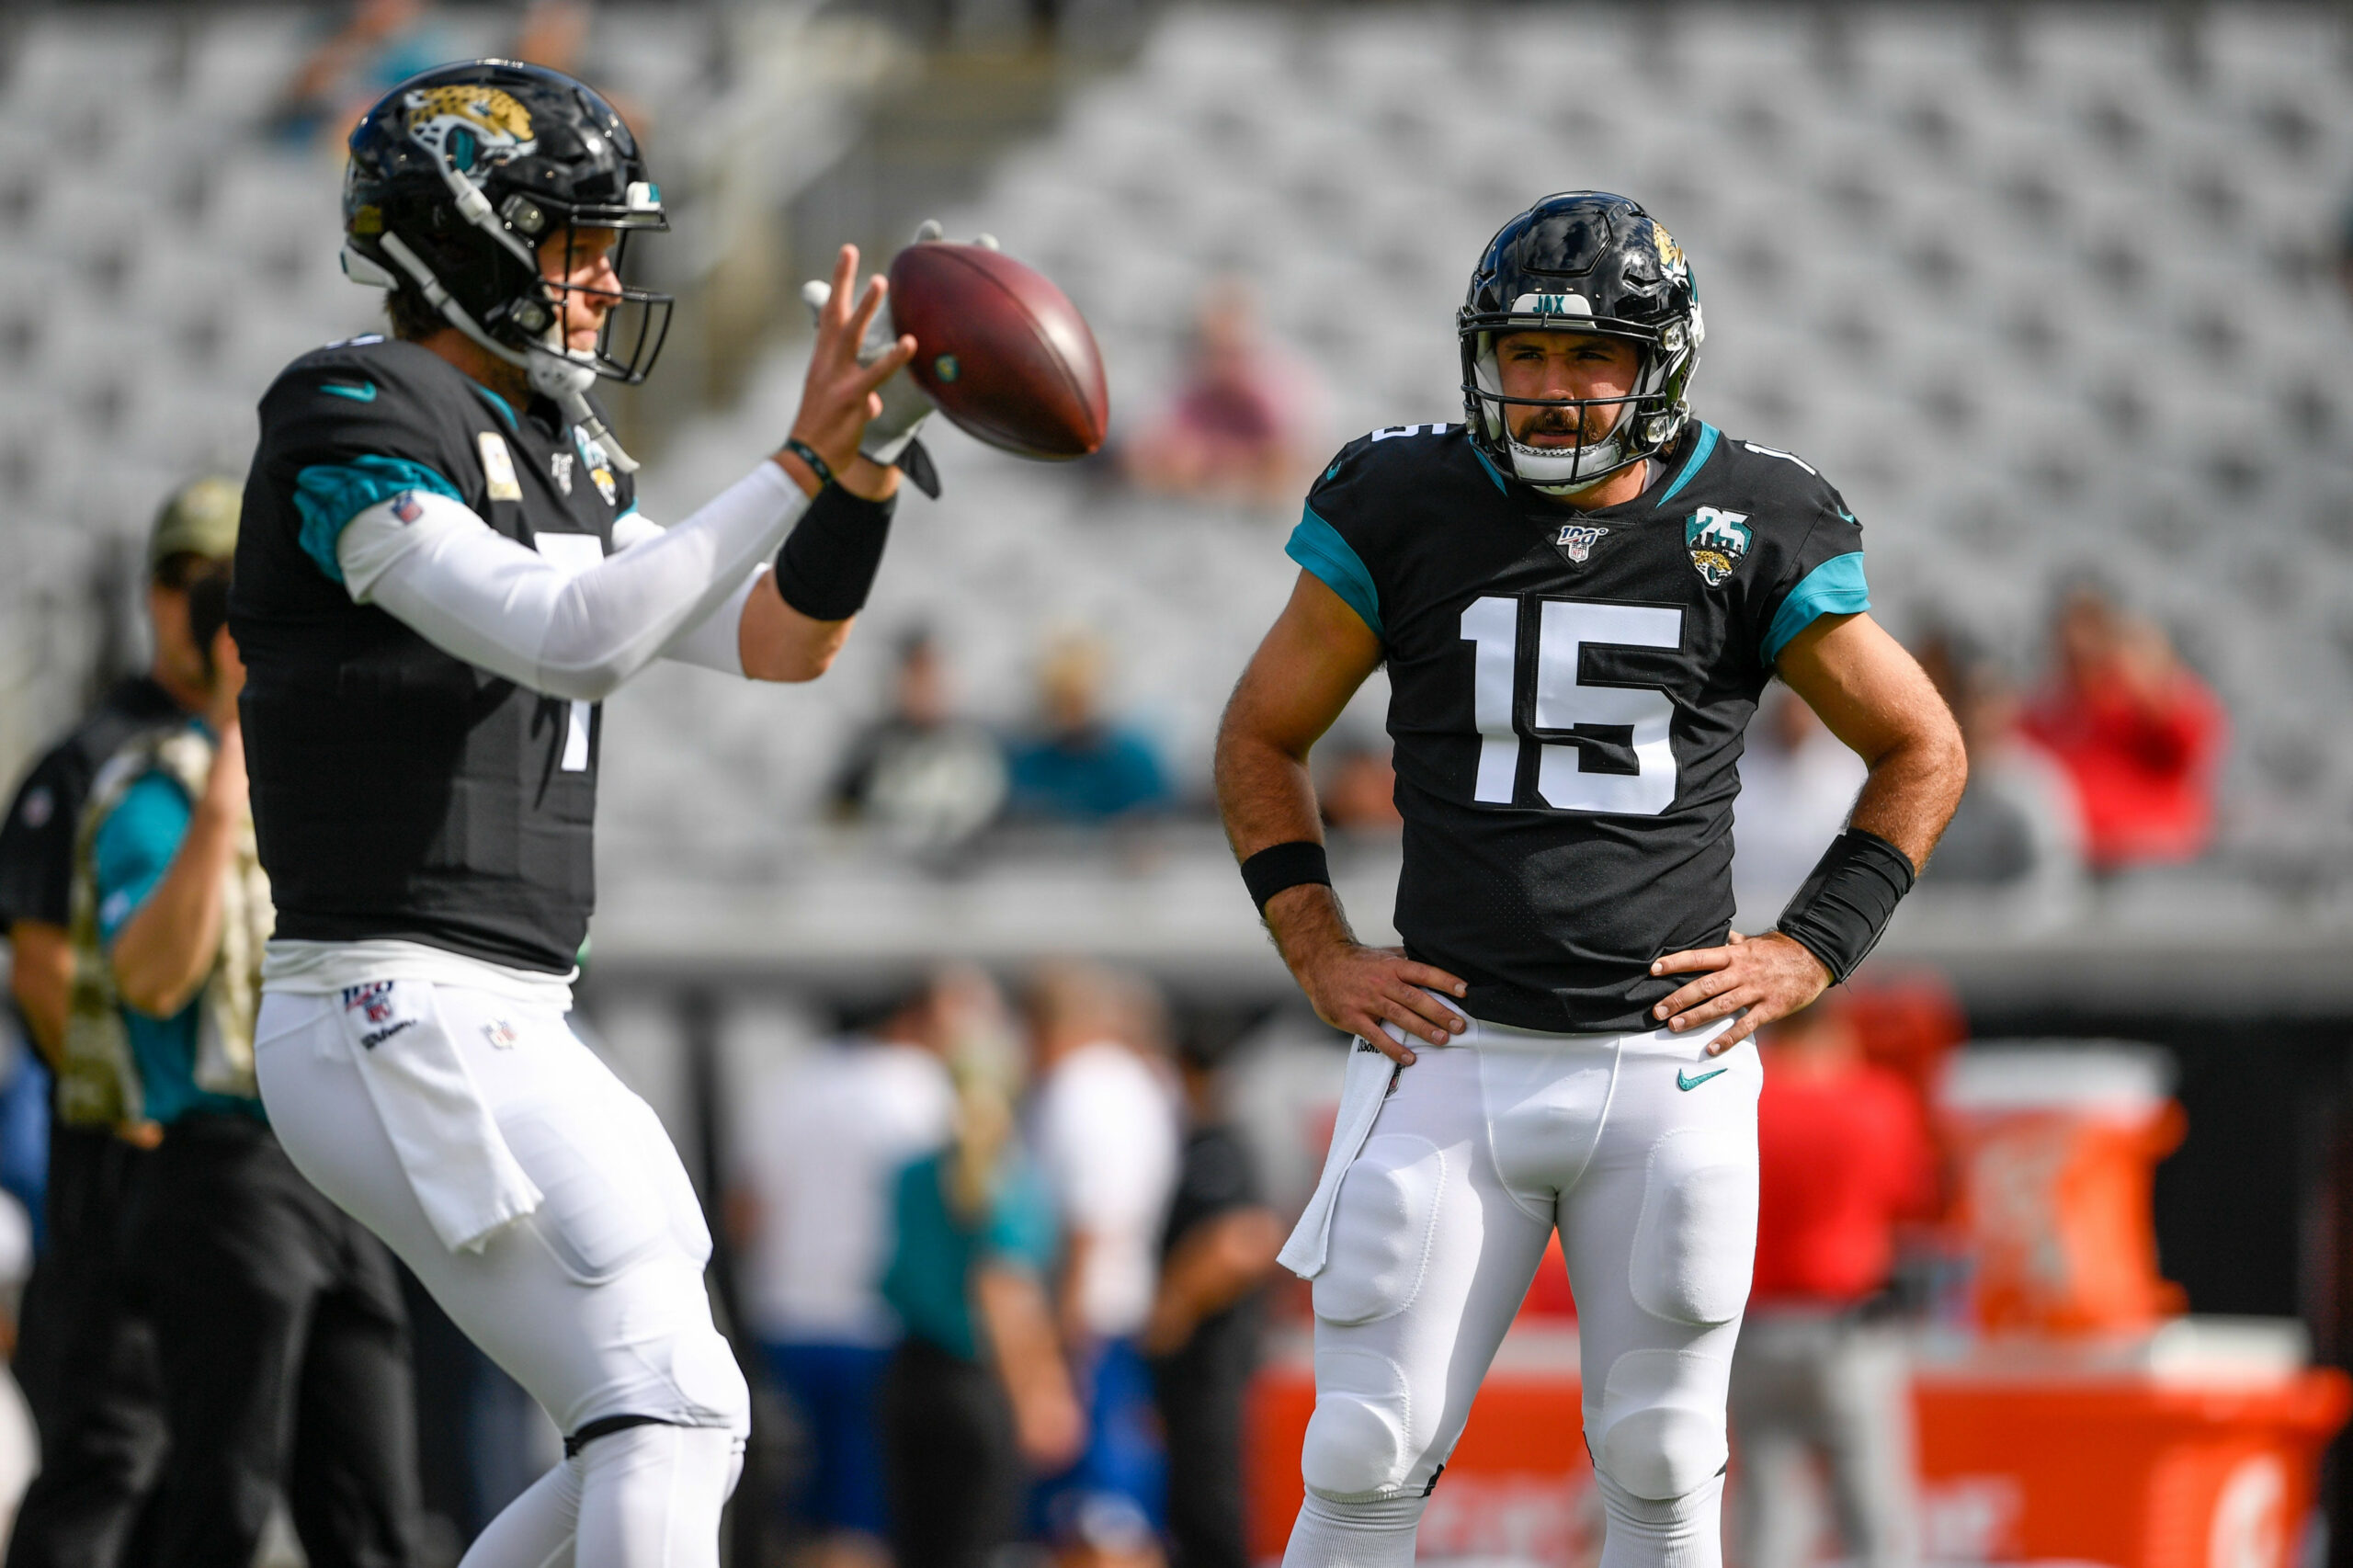 When Should the Jaguars Announce a Starting Quarterback for 11?